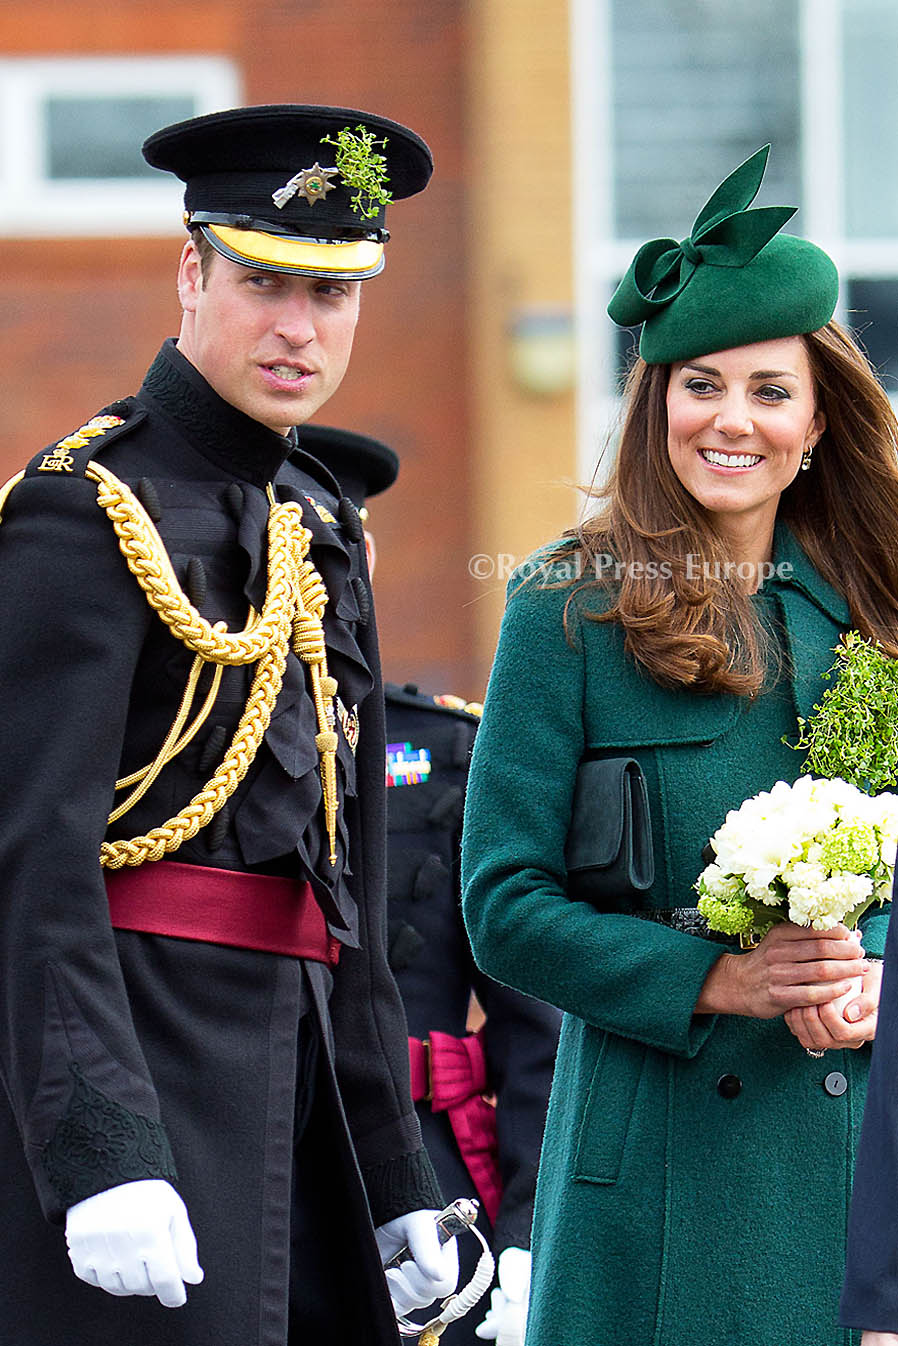 Kate and William Guest of Honor at the St Patrick's Parade in Aldershot